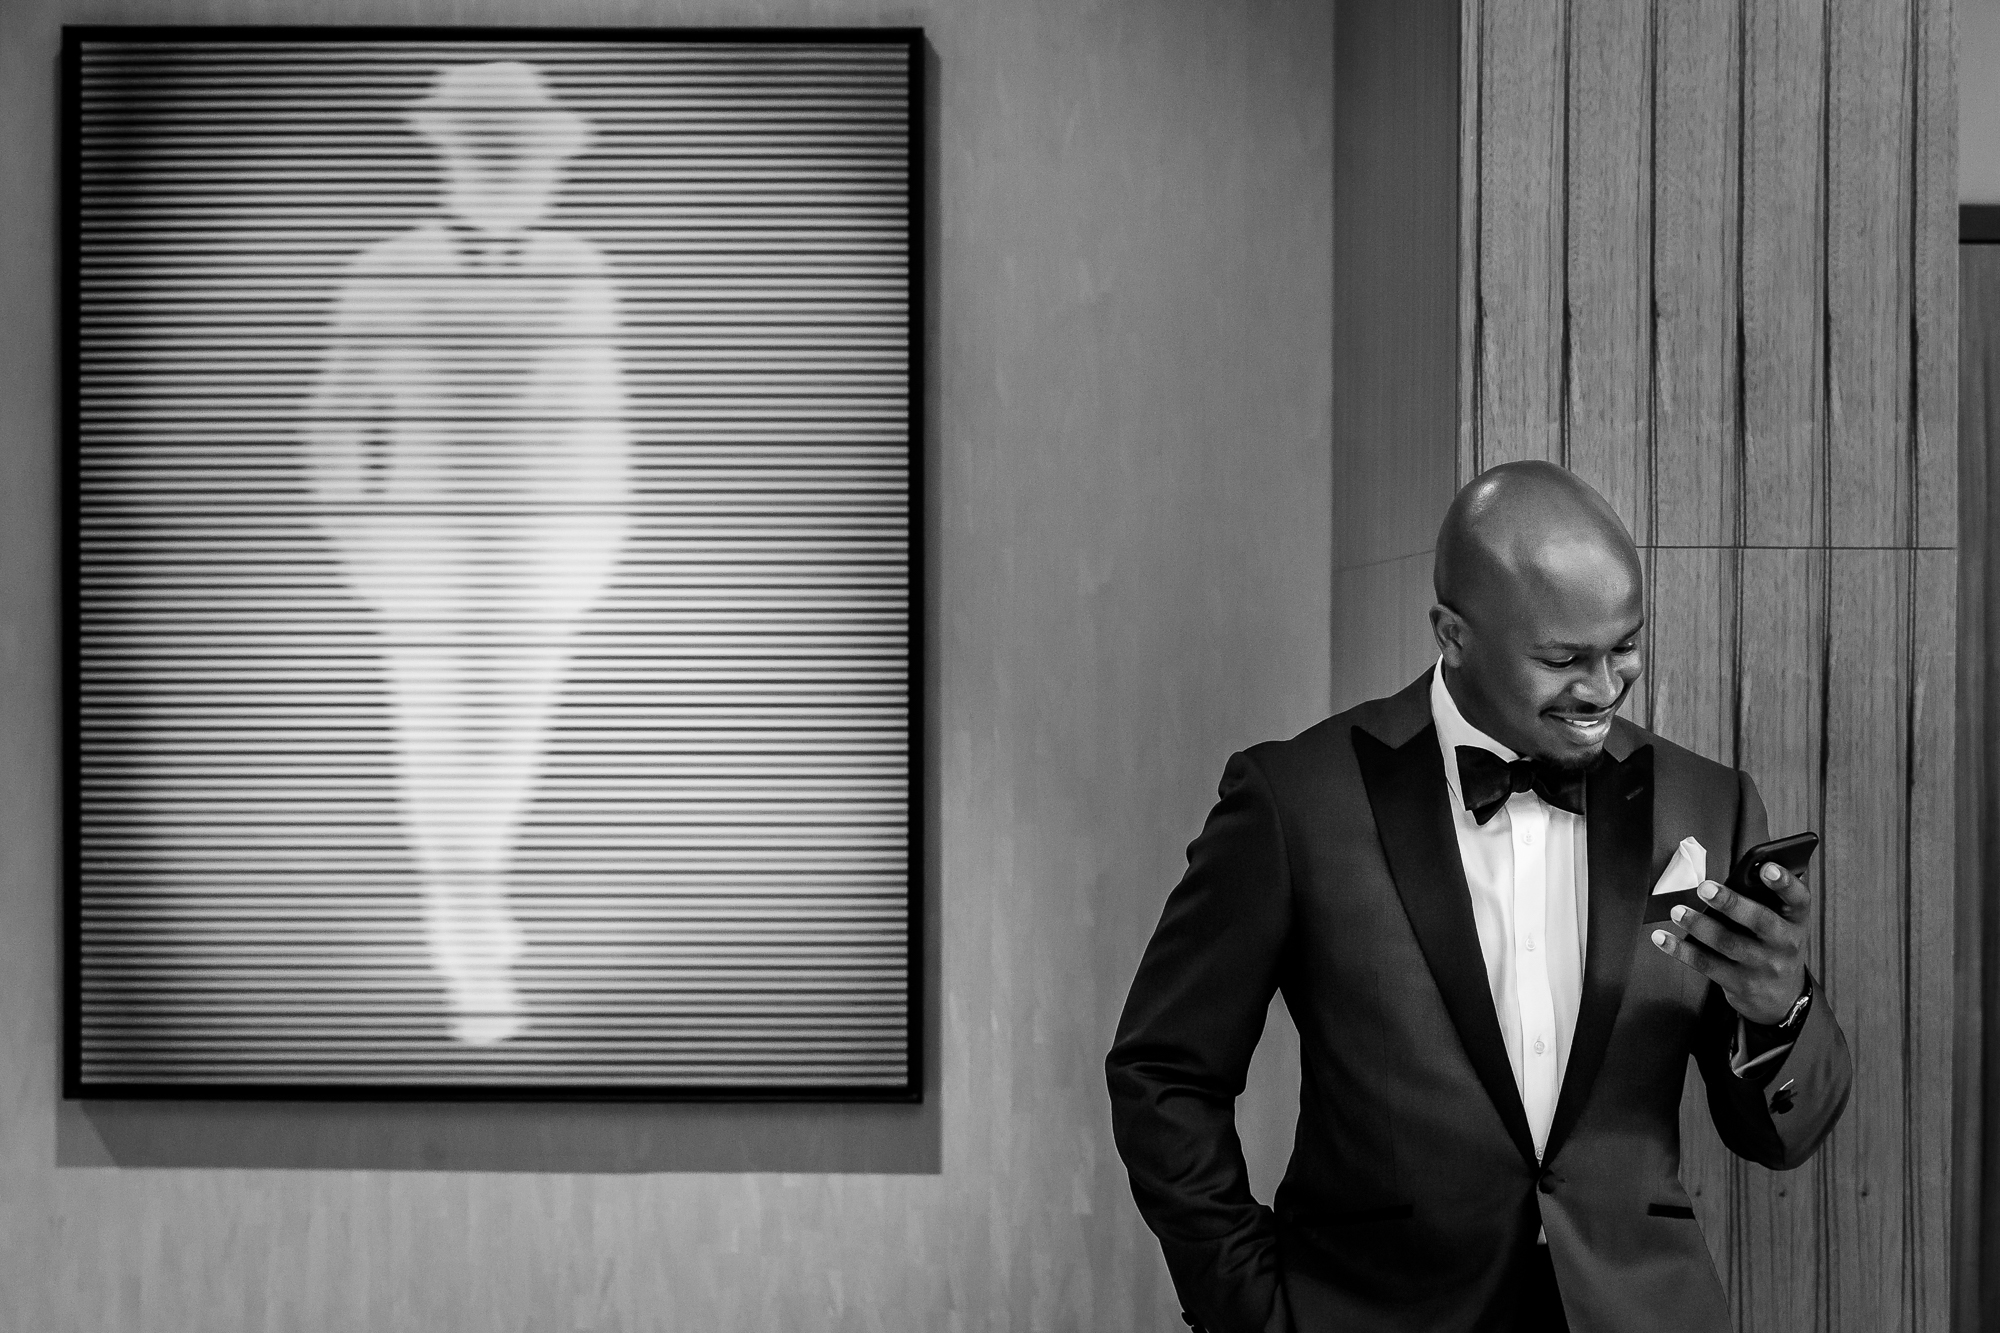 Groom checks his phone in front of fashion silhouette - photo by Christopher Jason Studios